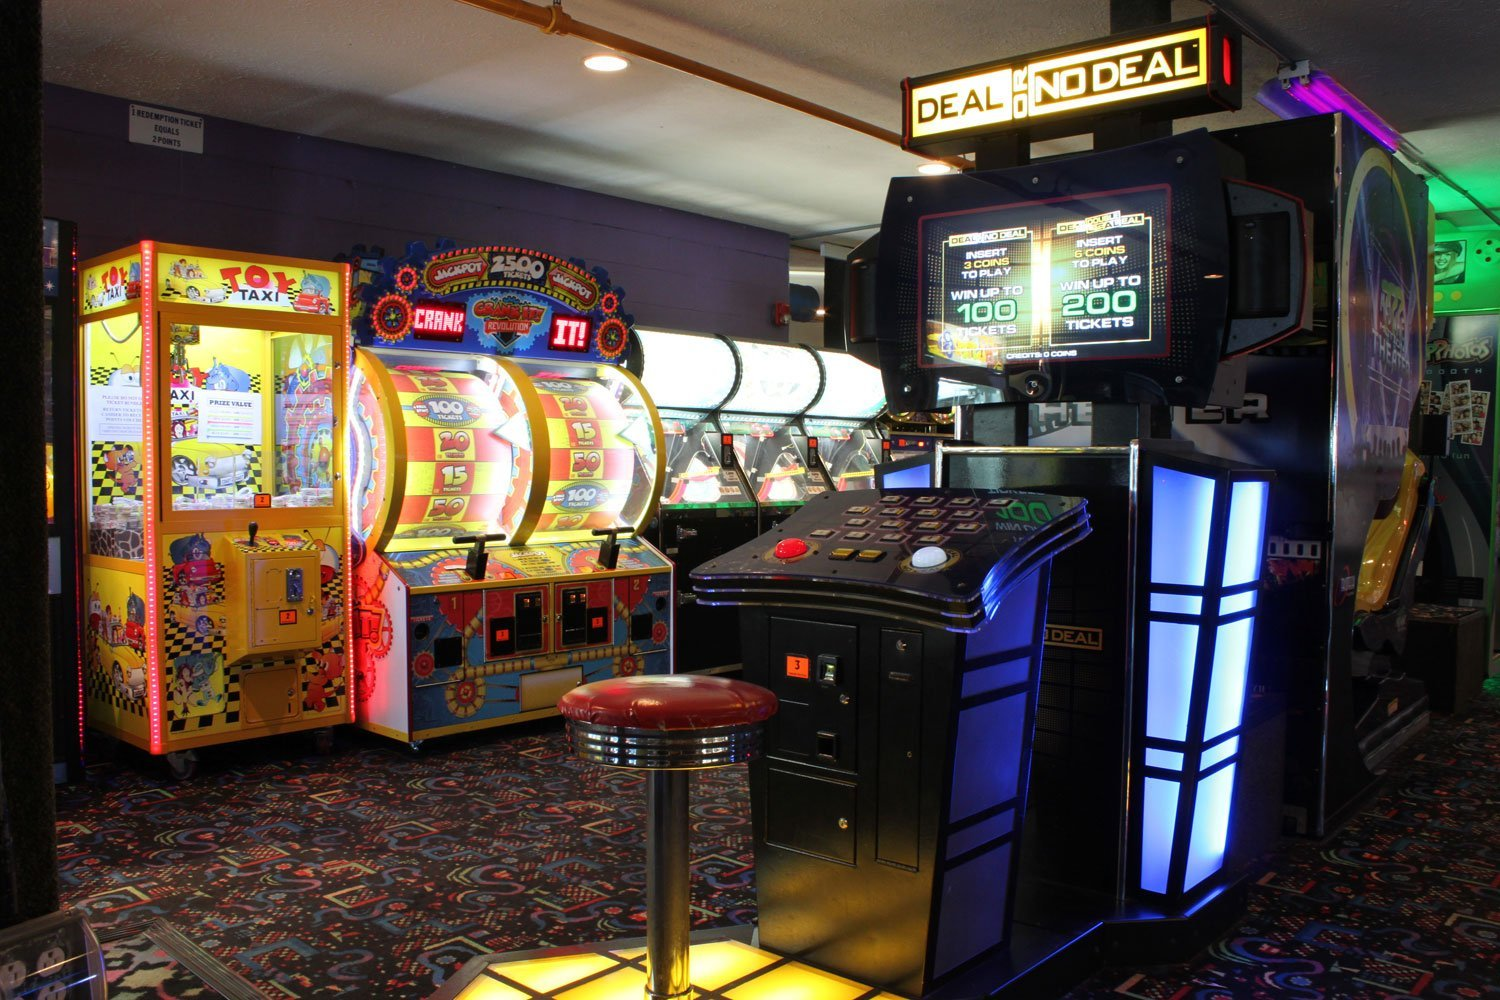 Arcade games at Fun 'N' Stuff in Macedonia, Ohio. The general manager looks for appealing prizes that encourage visitors to play the games.